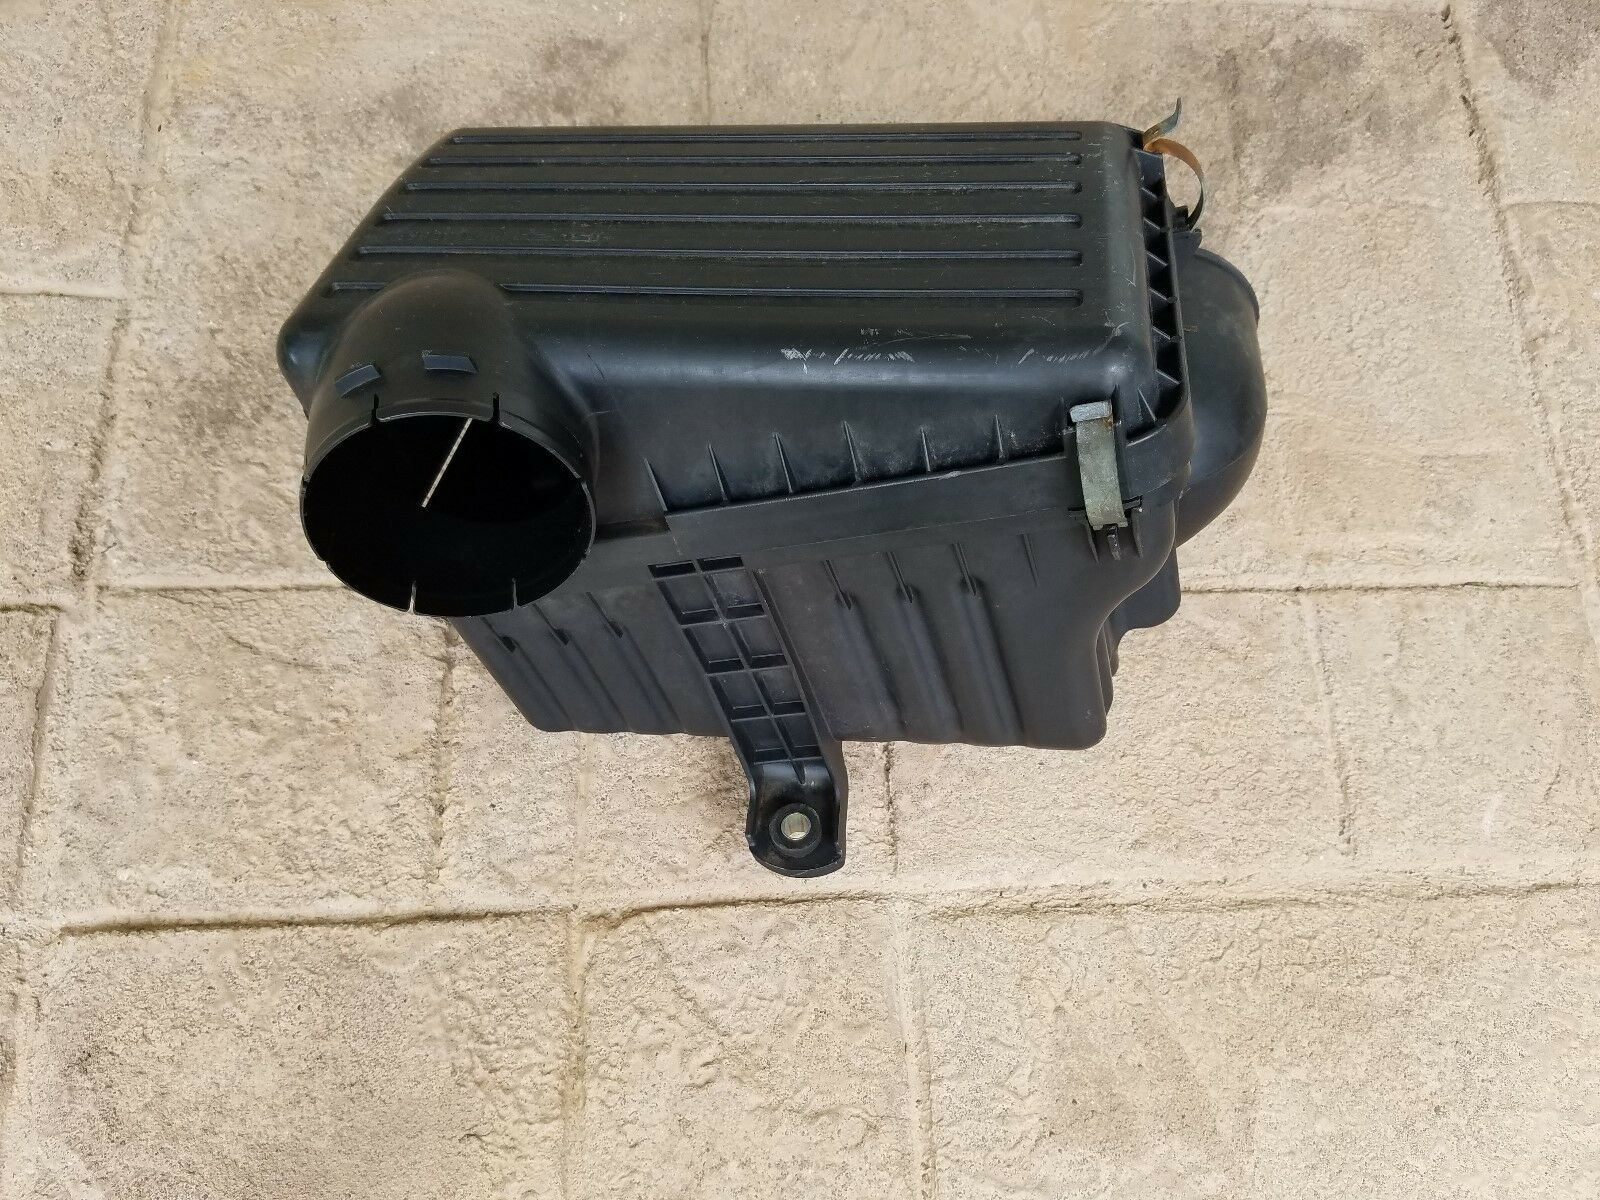 Used Isuzu Air Cleaner Assemblies For Sale 2005 Ascender Fuel Filter 1999 2002 Trooper Intake Housing Box Oem